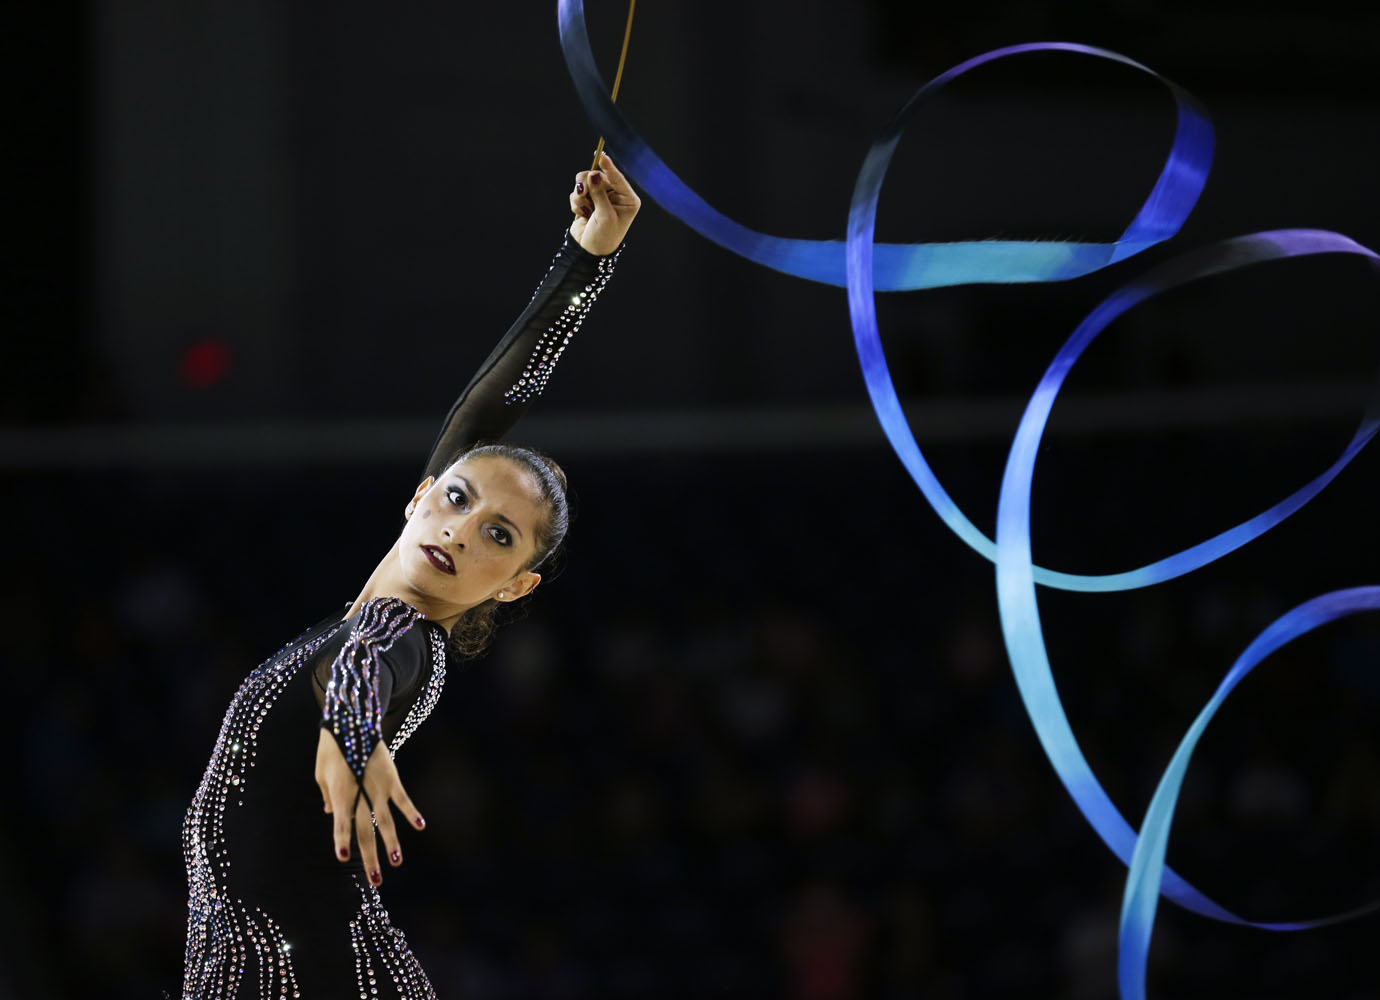 Rhythmic gymnastics, military parade, goose interruption | July 20